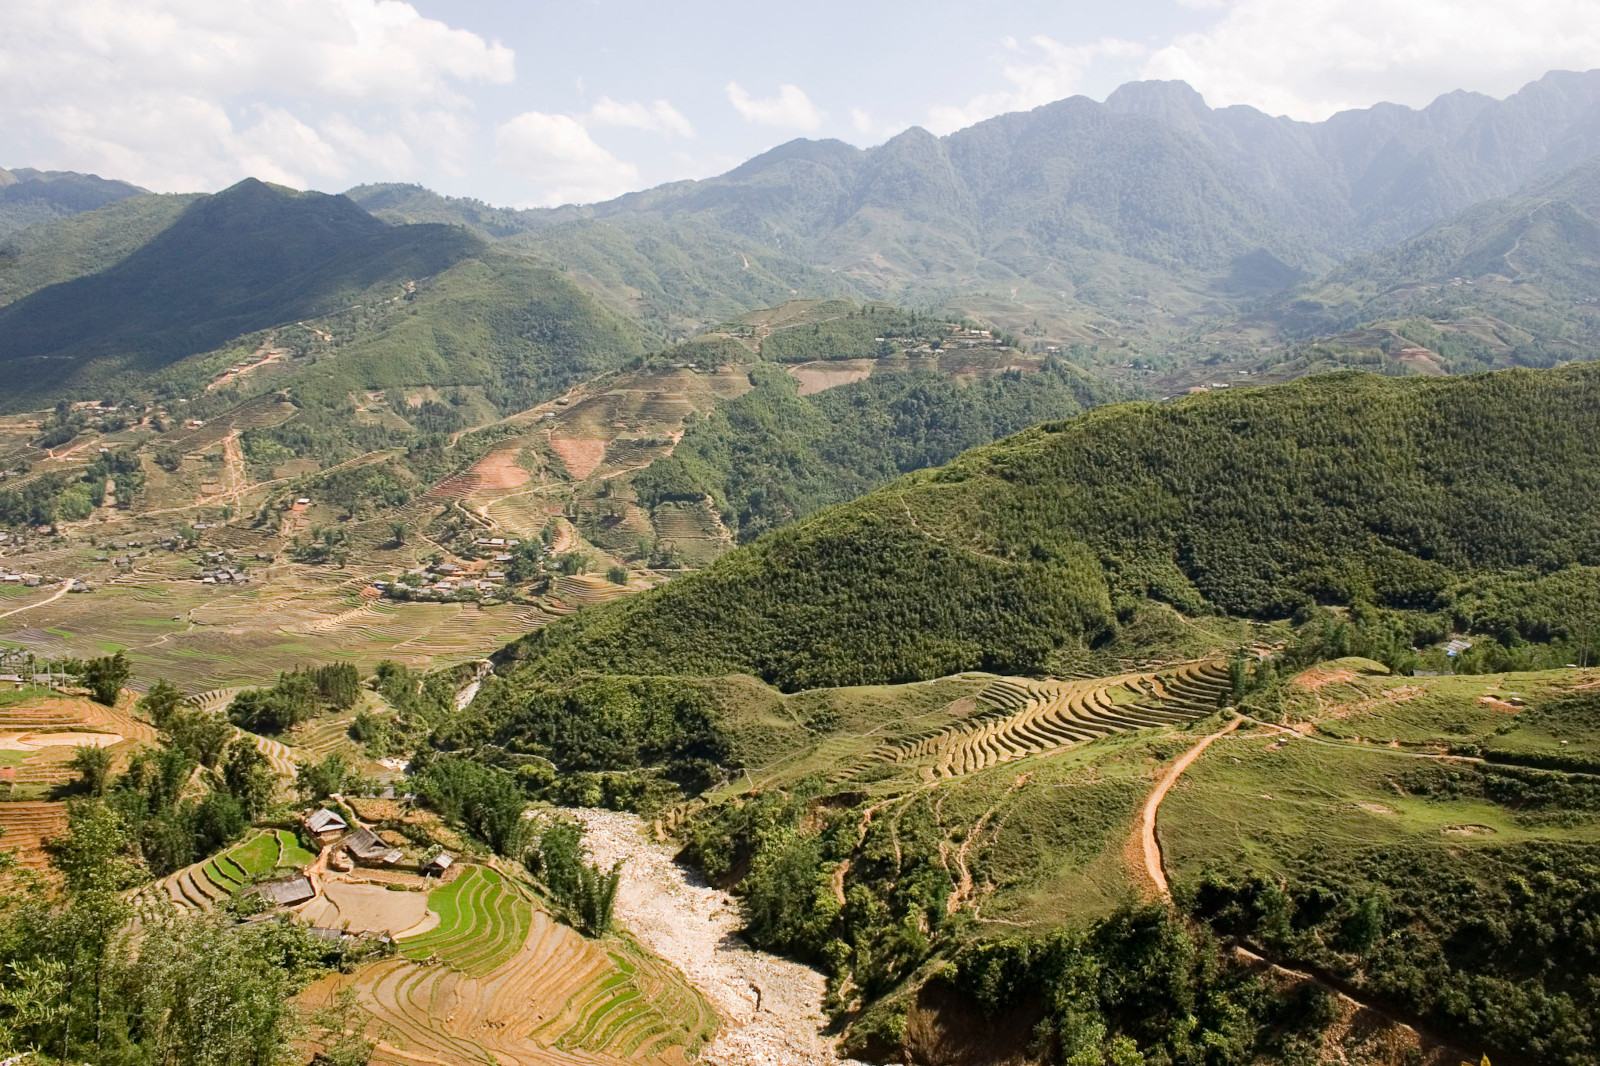 Image of the Hoang Lien Son Range from Sapa